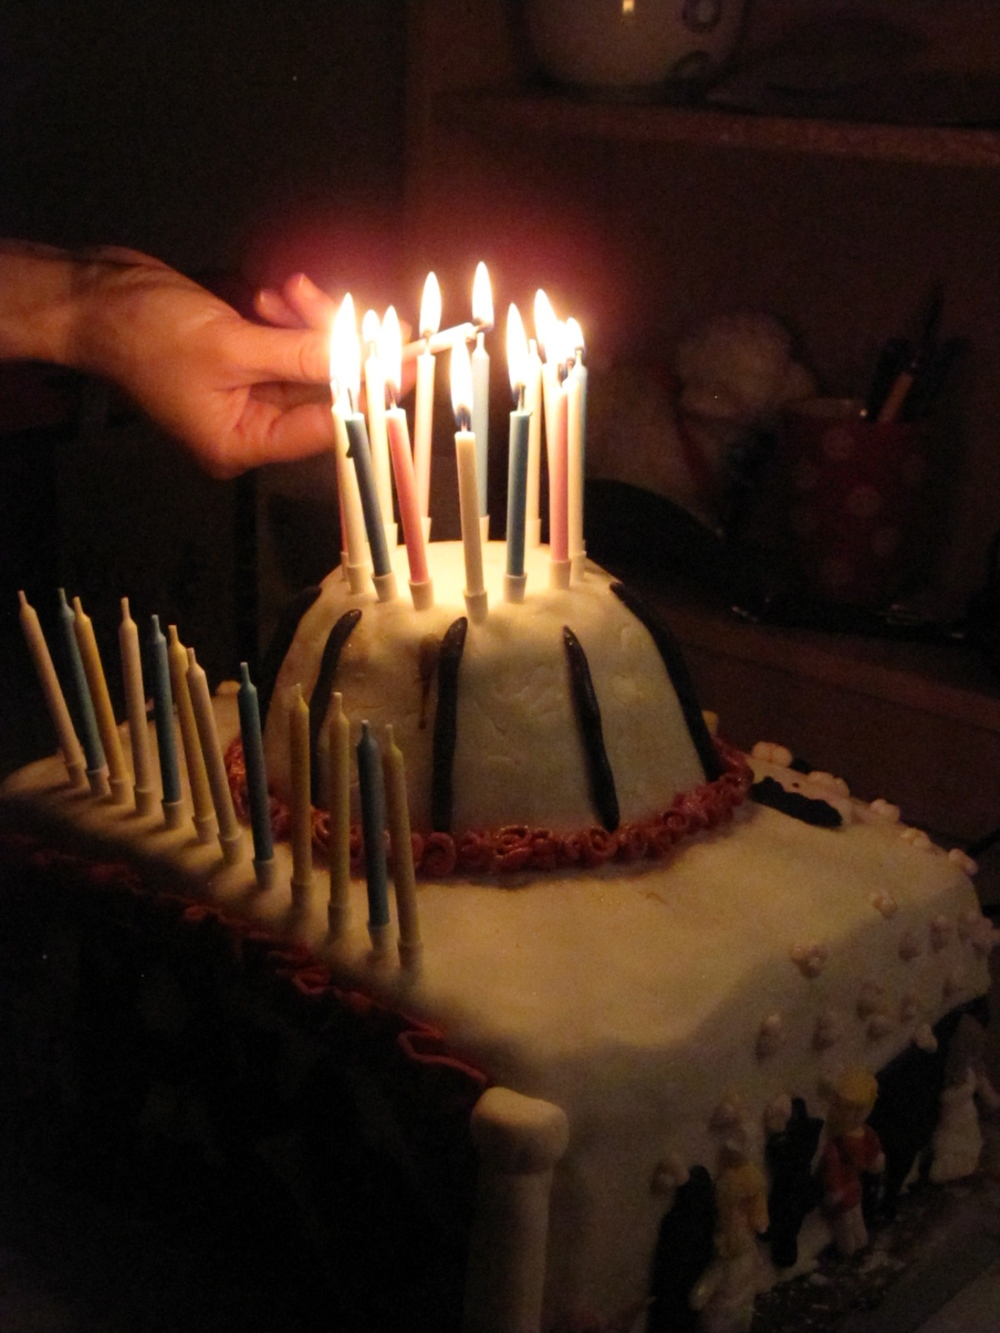 Epic cake with lots of candles.